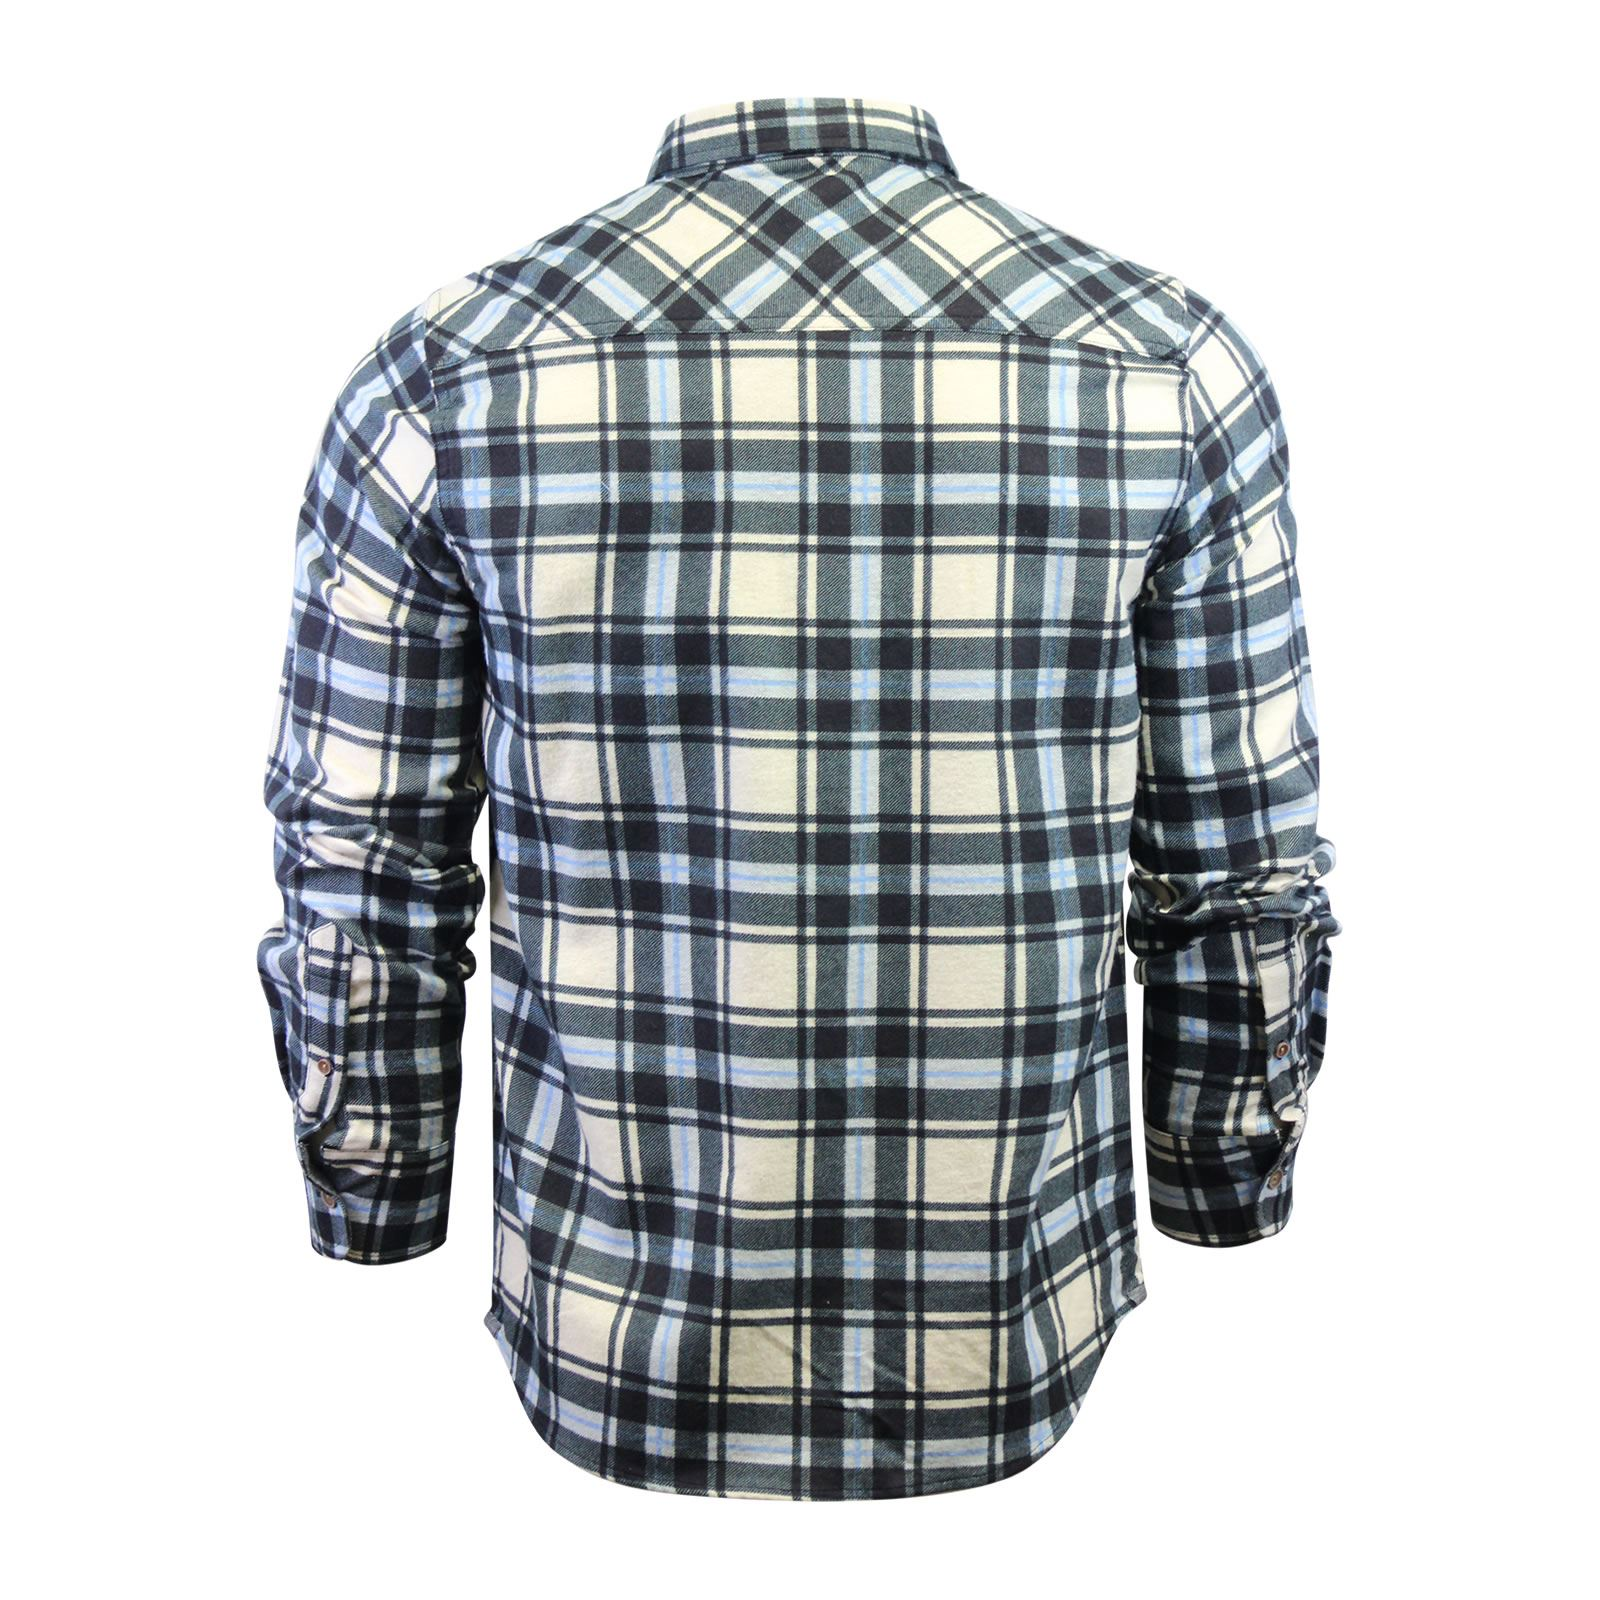 Mens-Check-Shirt-Brave-Soul-Flannel-Brushed-Cotton-Long-Sleeve-Casual-Top thumbnail 91